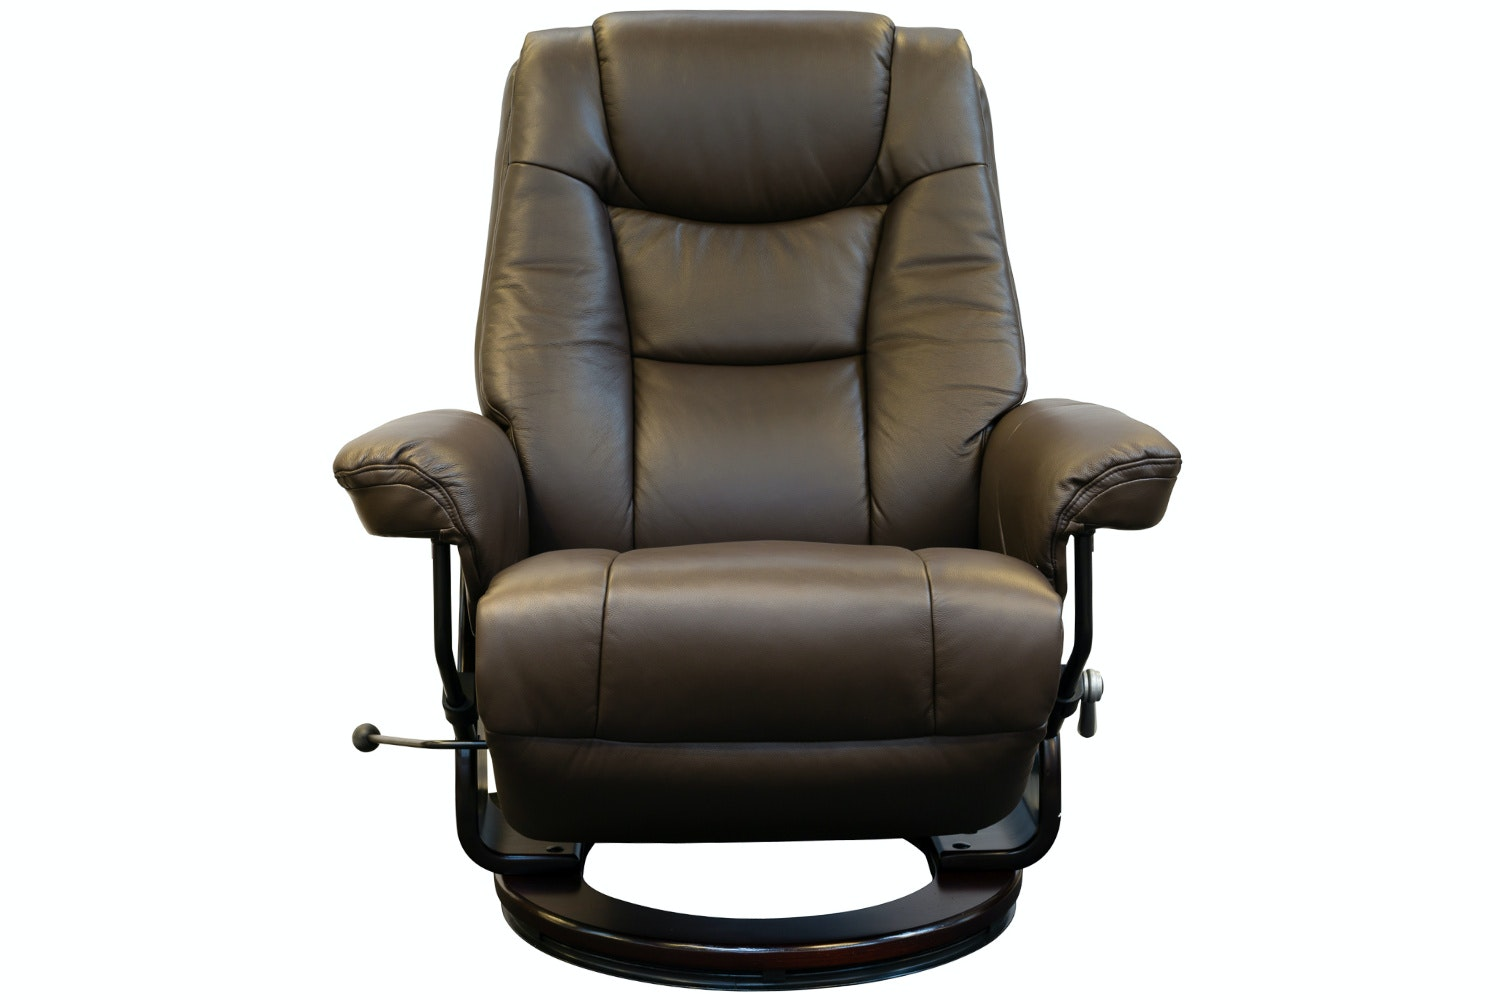 Conroy Swivel Recliner Chair